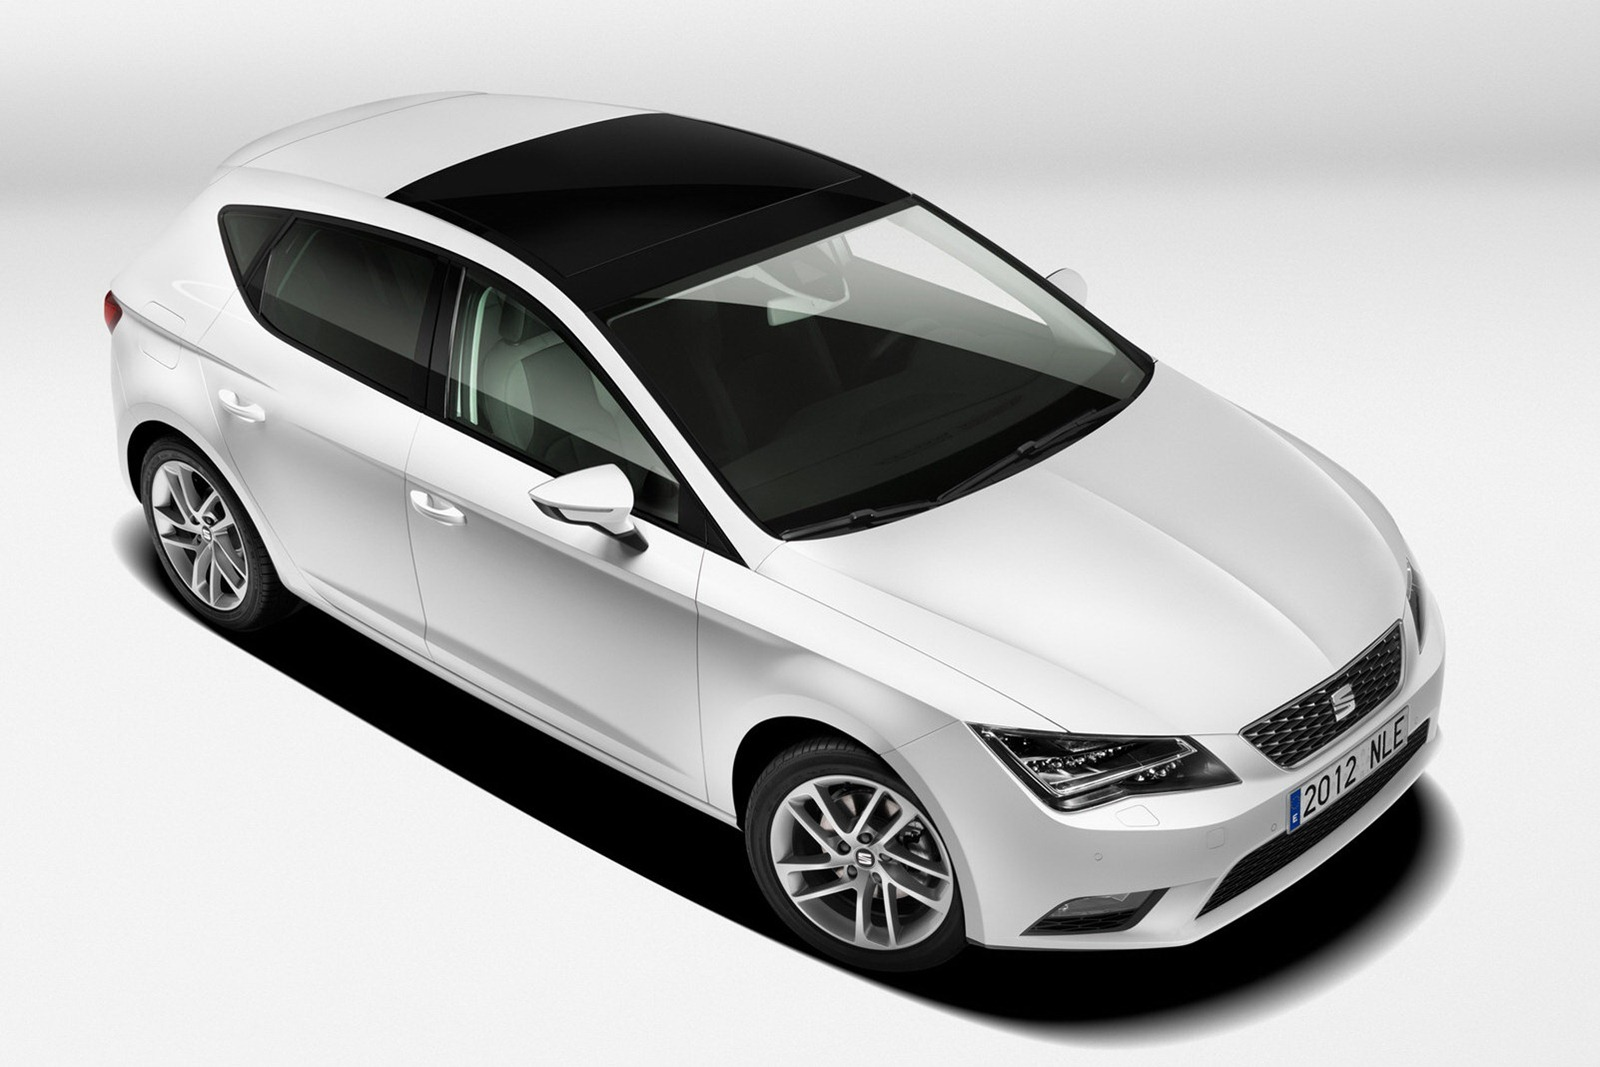 2013 Seat Leon 2 2013 Seat Leon   Majestic Aesthete, Dazzling Color Contrast and Superb Nav System